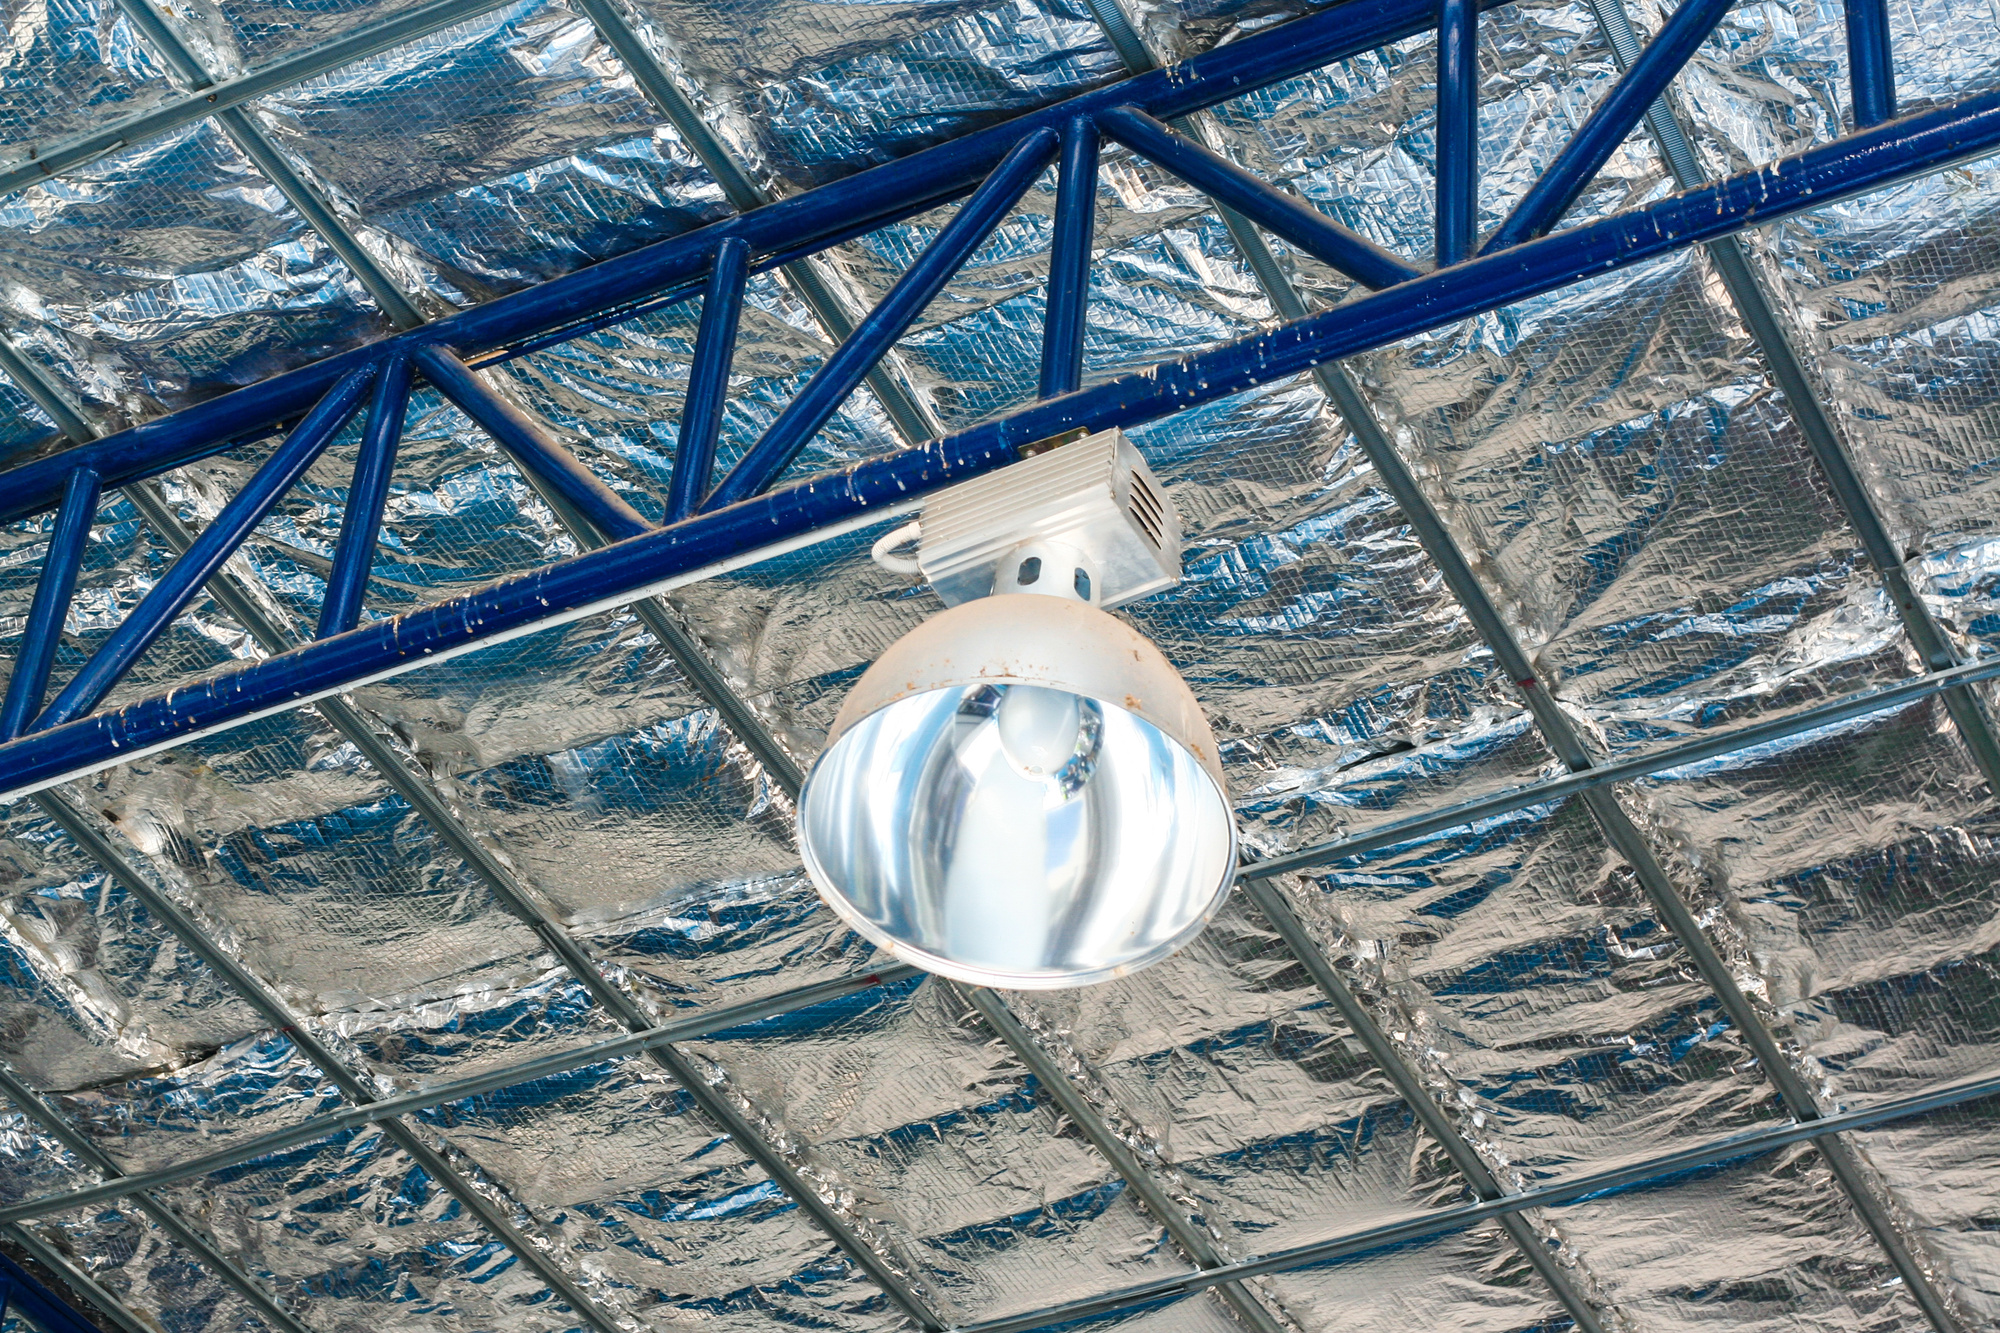 Warehouse Lighting: How to Choose the Best Lighting For Your Warehouse